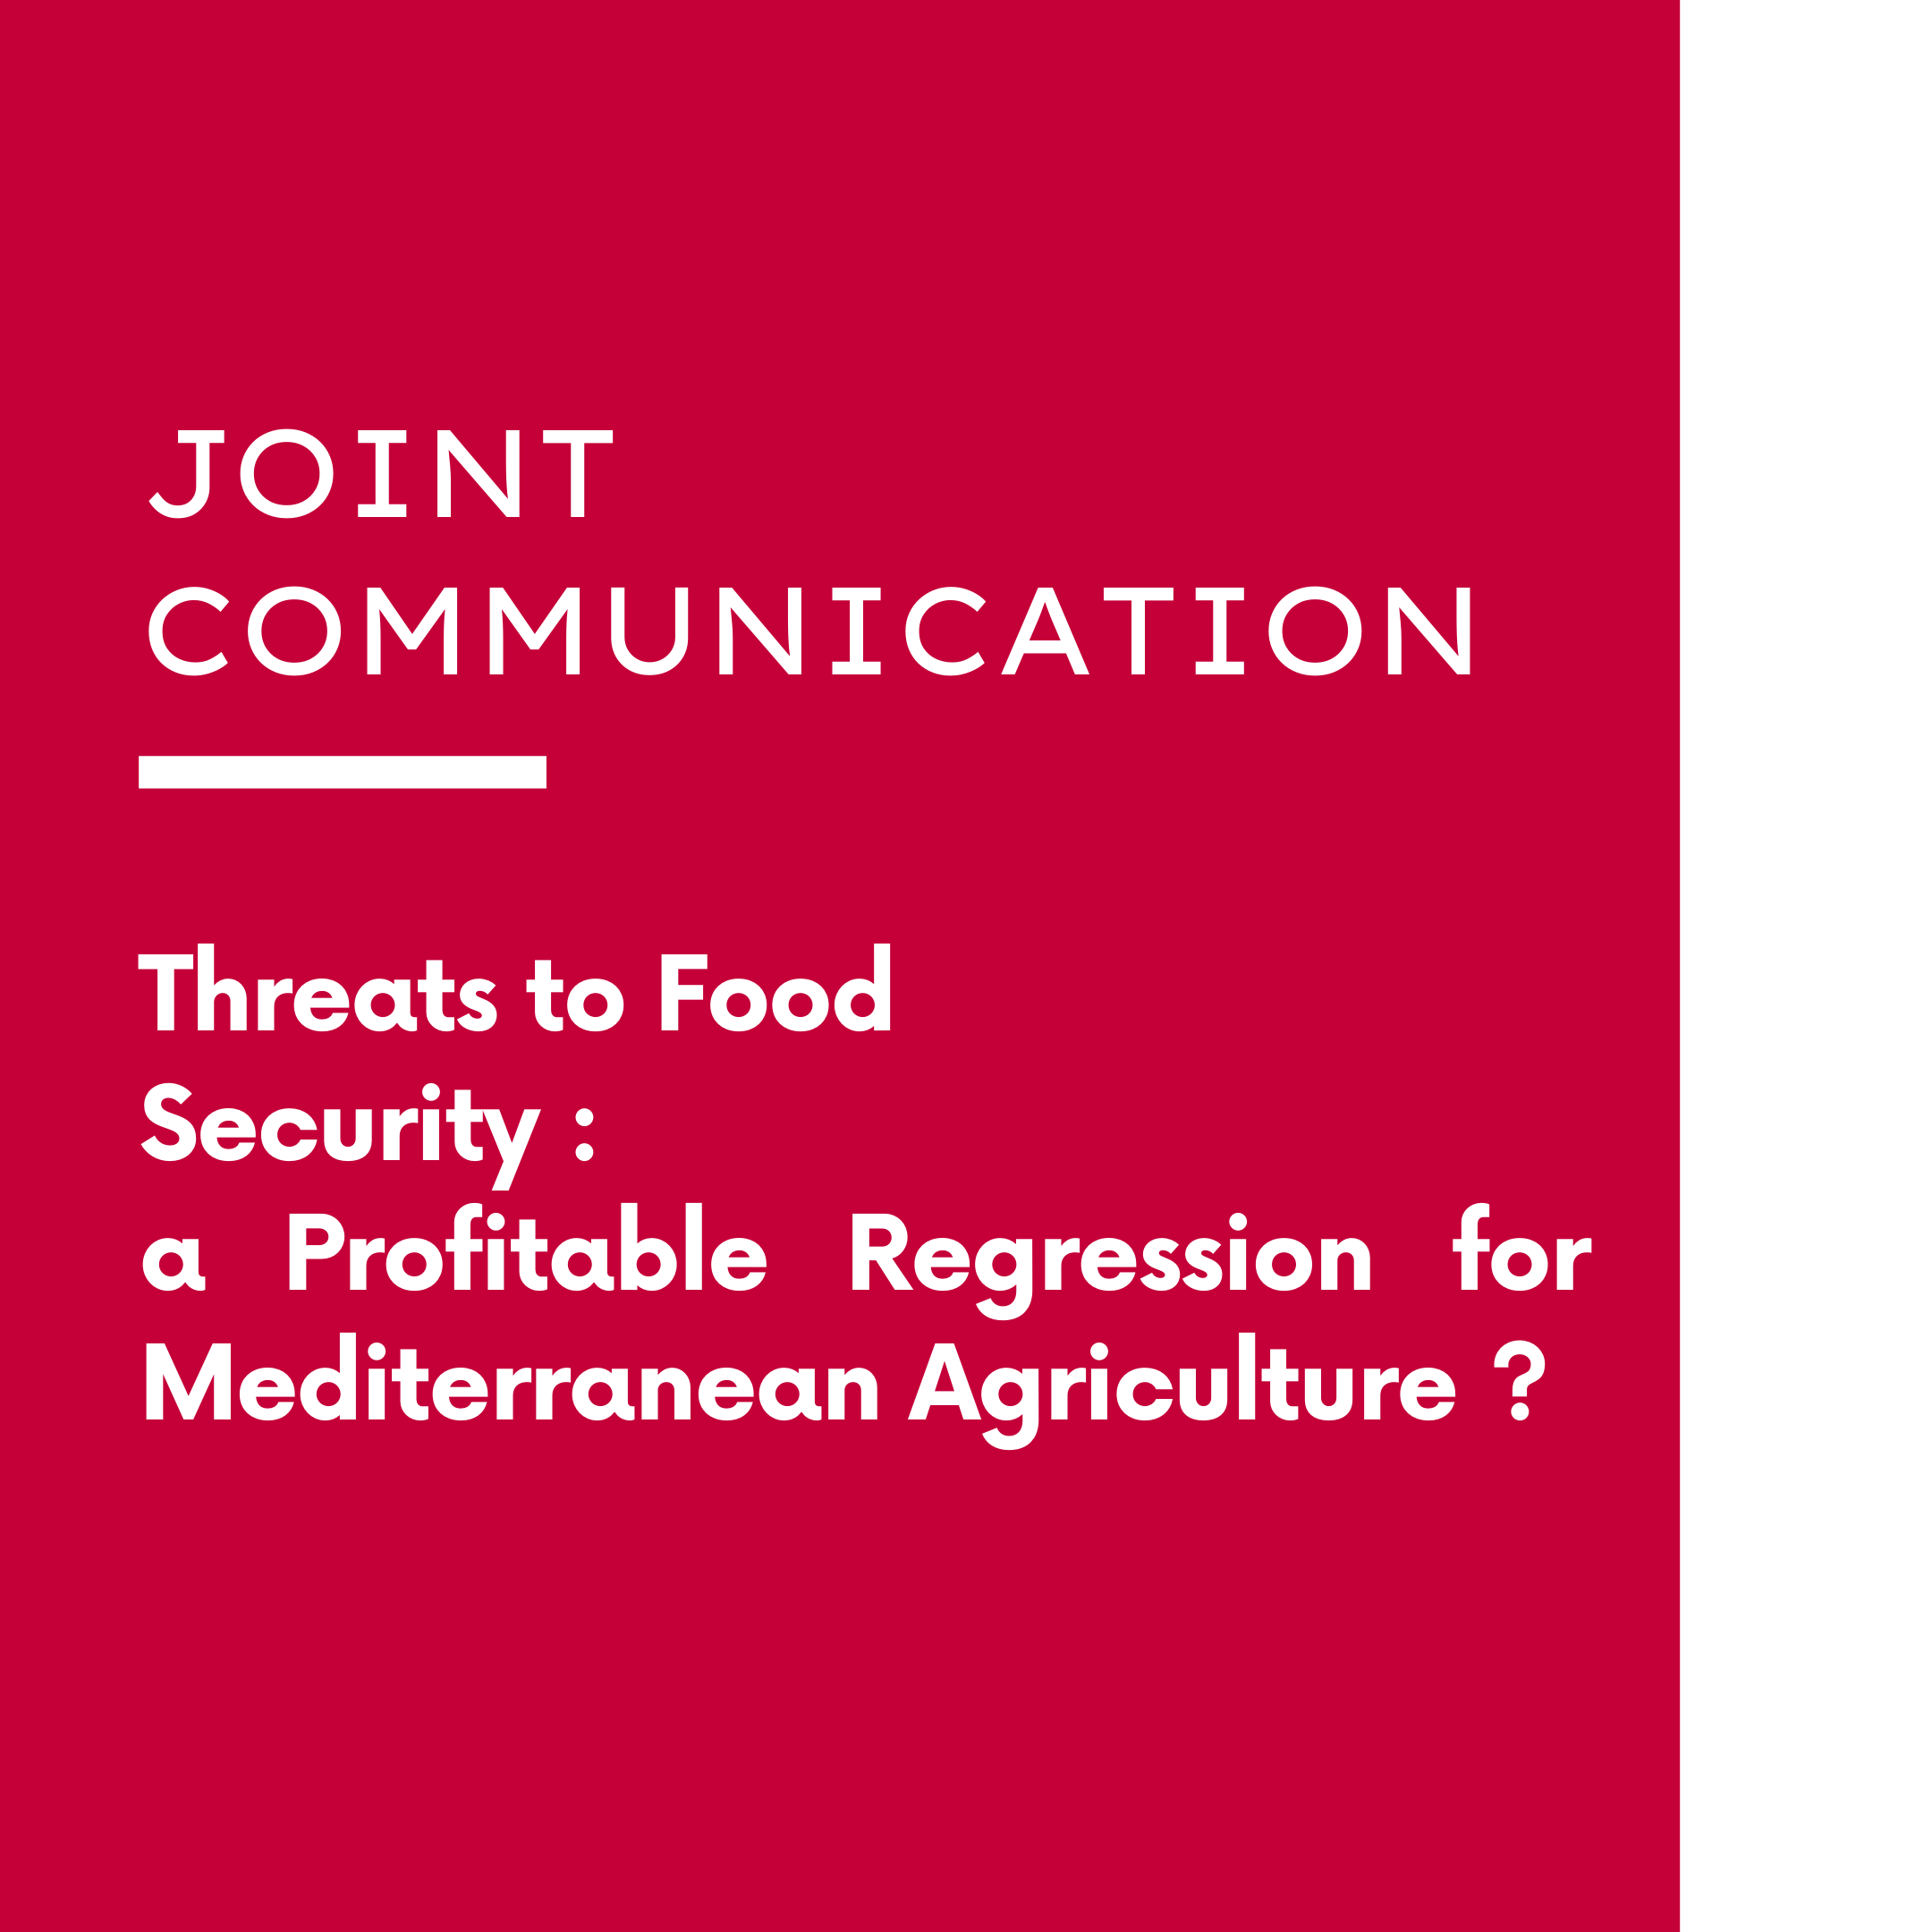 Threats to Food Security : A Profitable Regression for Mediterranean Agriculture?